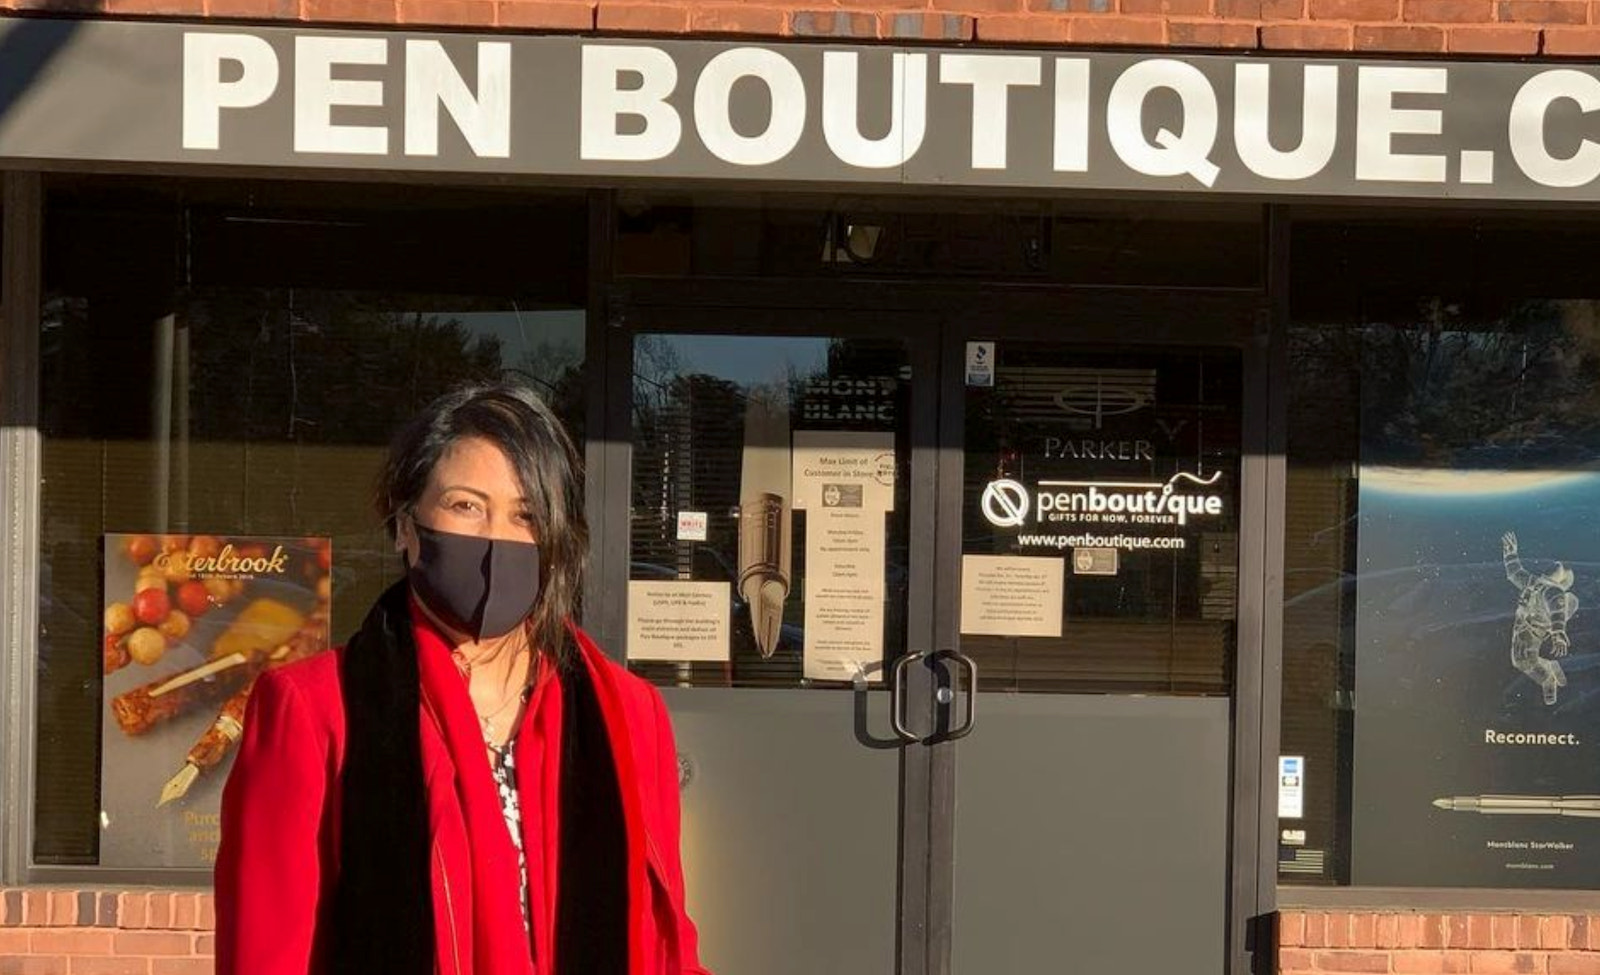 Leena outside of her business, Pen Boutique, in Columbia, Maryland.